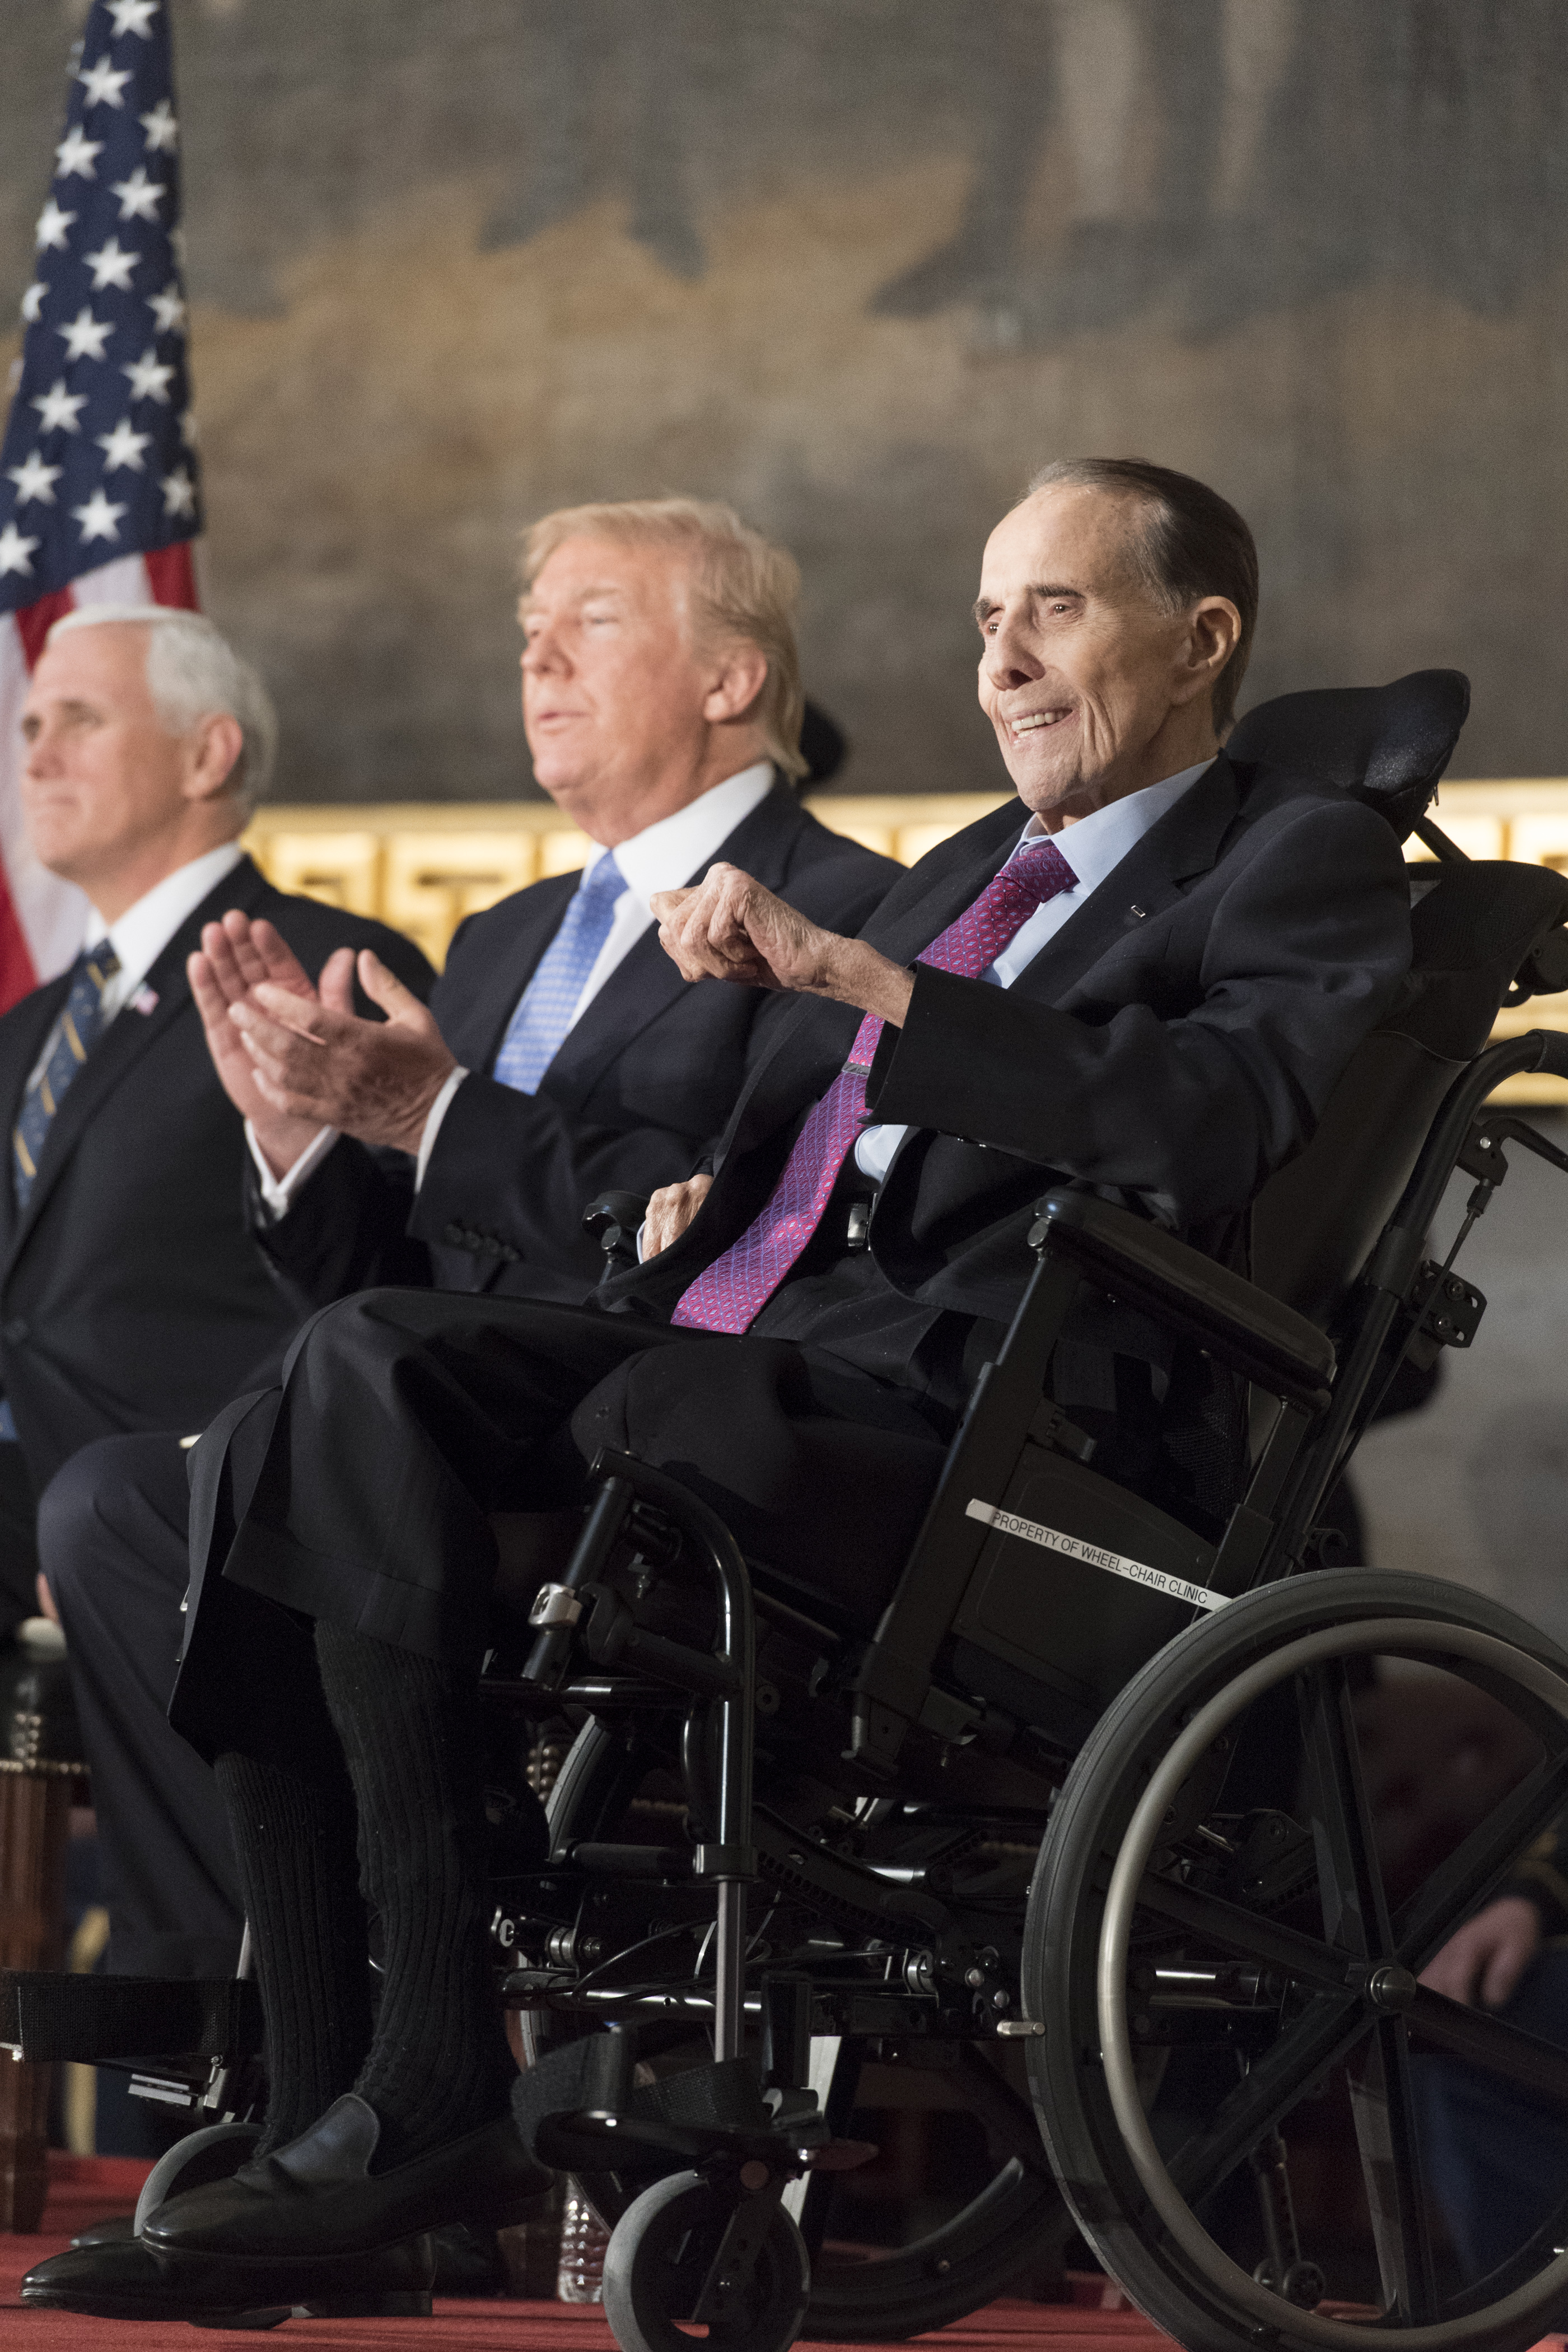 Senator Bob Dole with President Trump and Vice President Pence